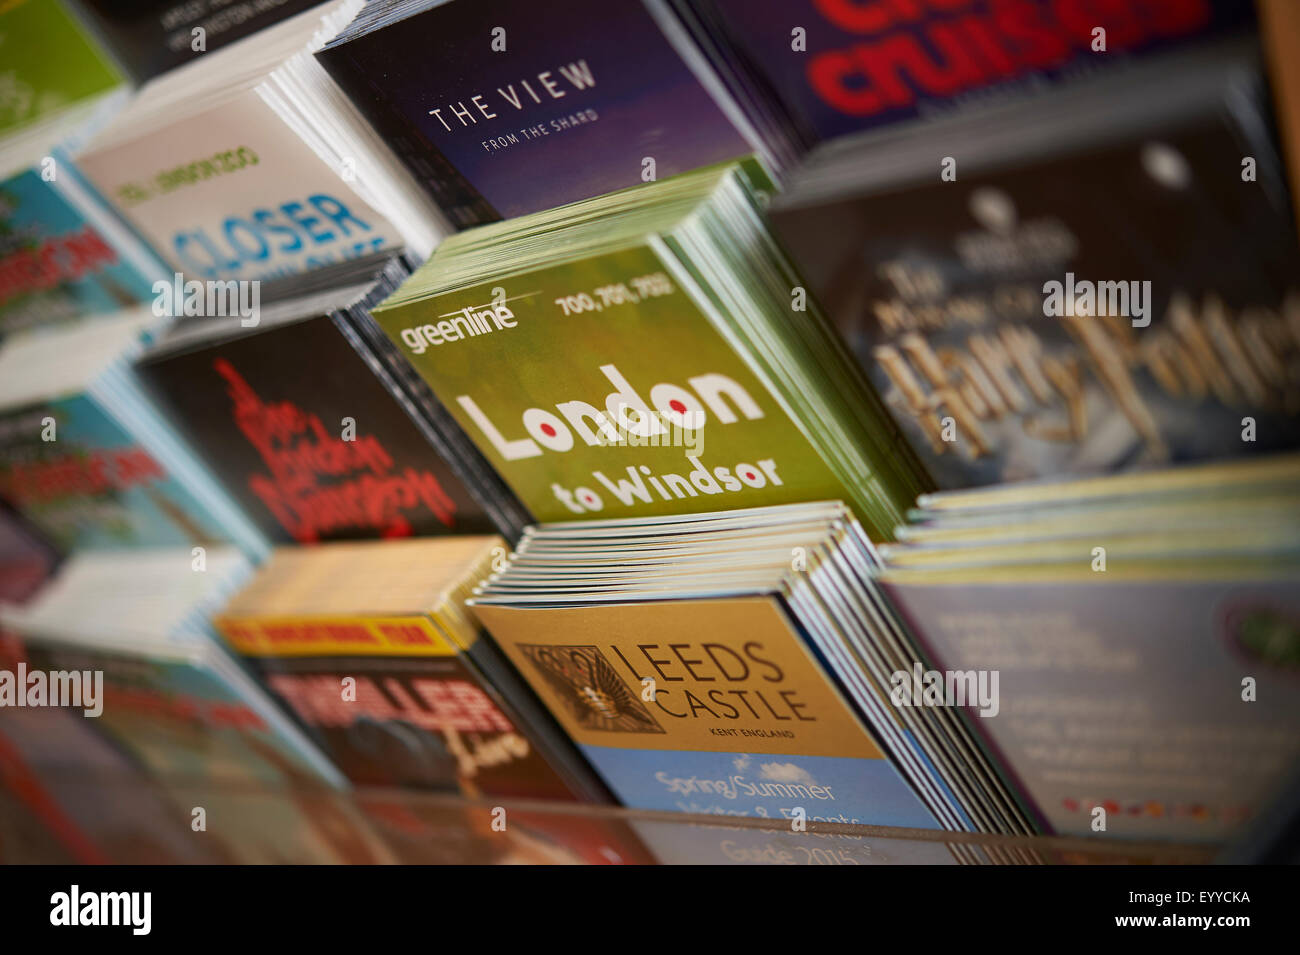 leaflets in a london hotel - Stock Image